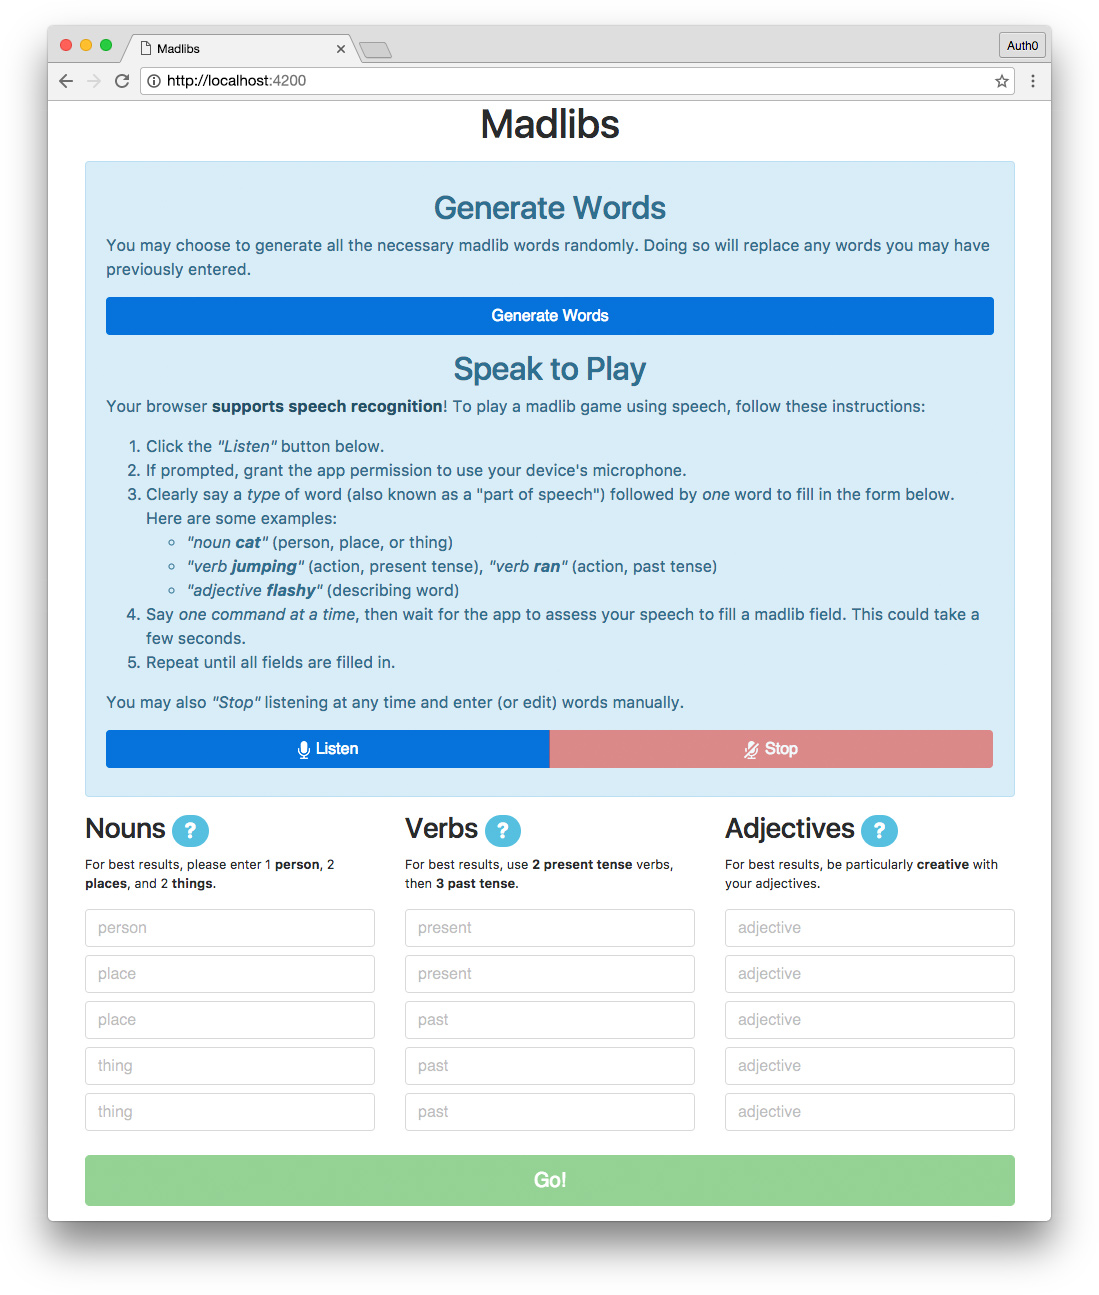 Madlibs app with Angular and speech recognition